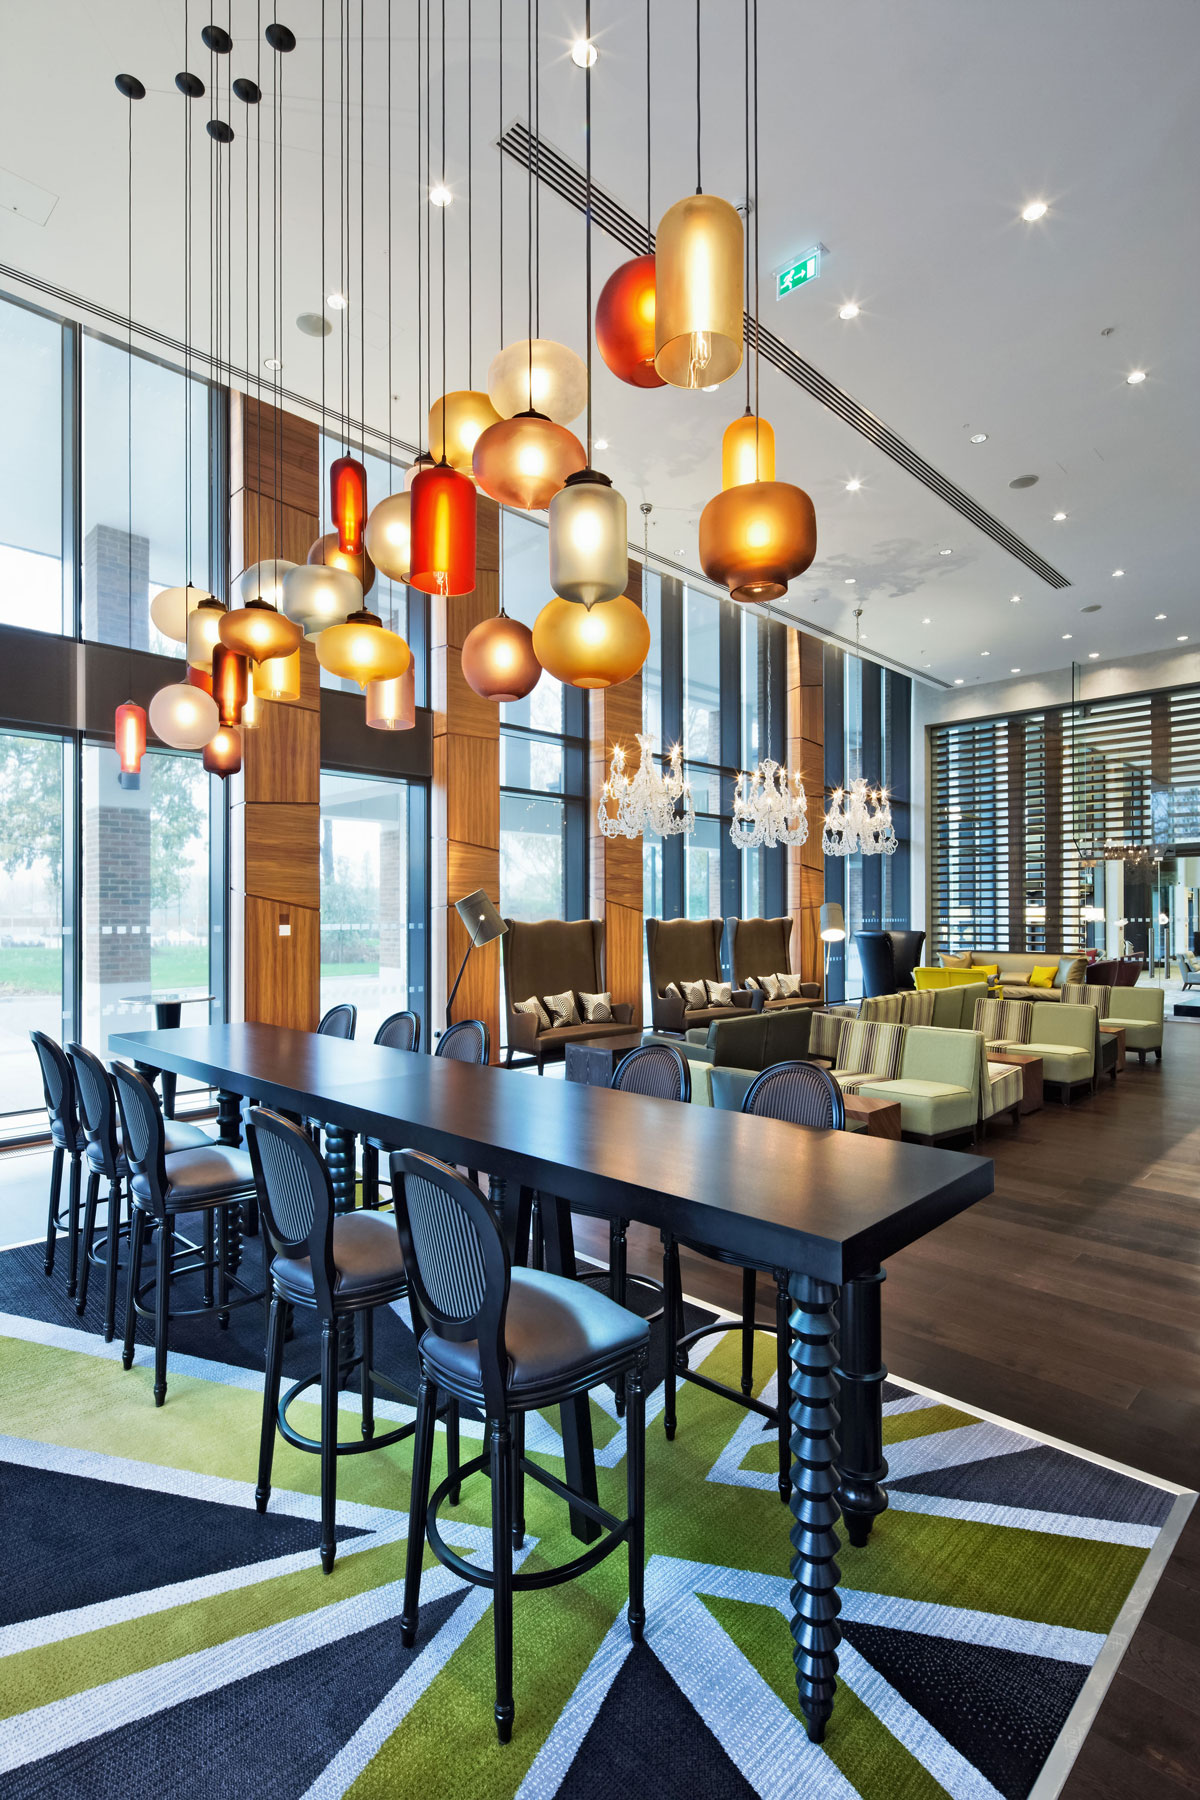 Niche modern pendant lights at the t5 hilton at heathrow in london niche modern pendant lighting in the hilton london heathrow airport aloadofball Gallery